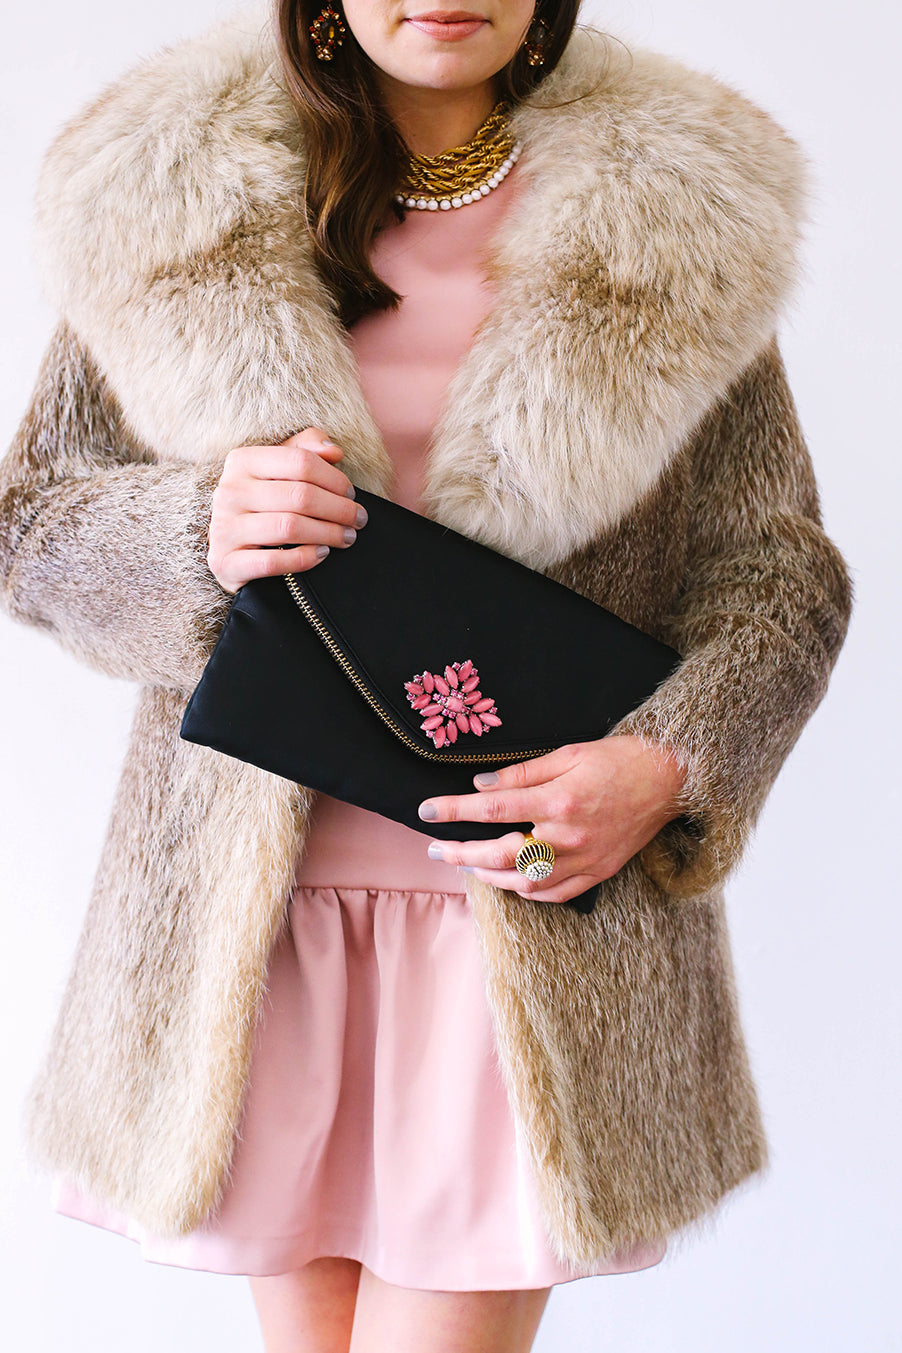 Pink Vintage Brooch on Black Clutch